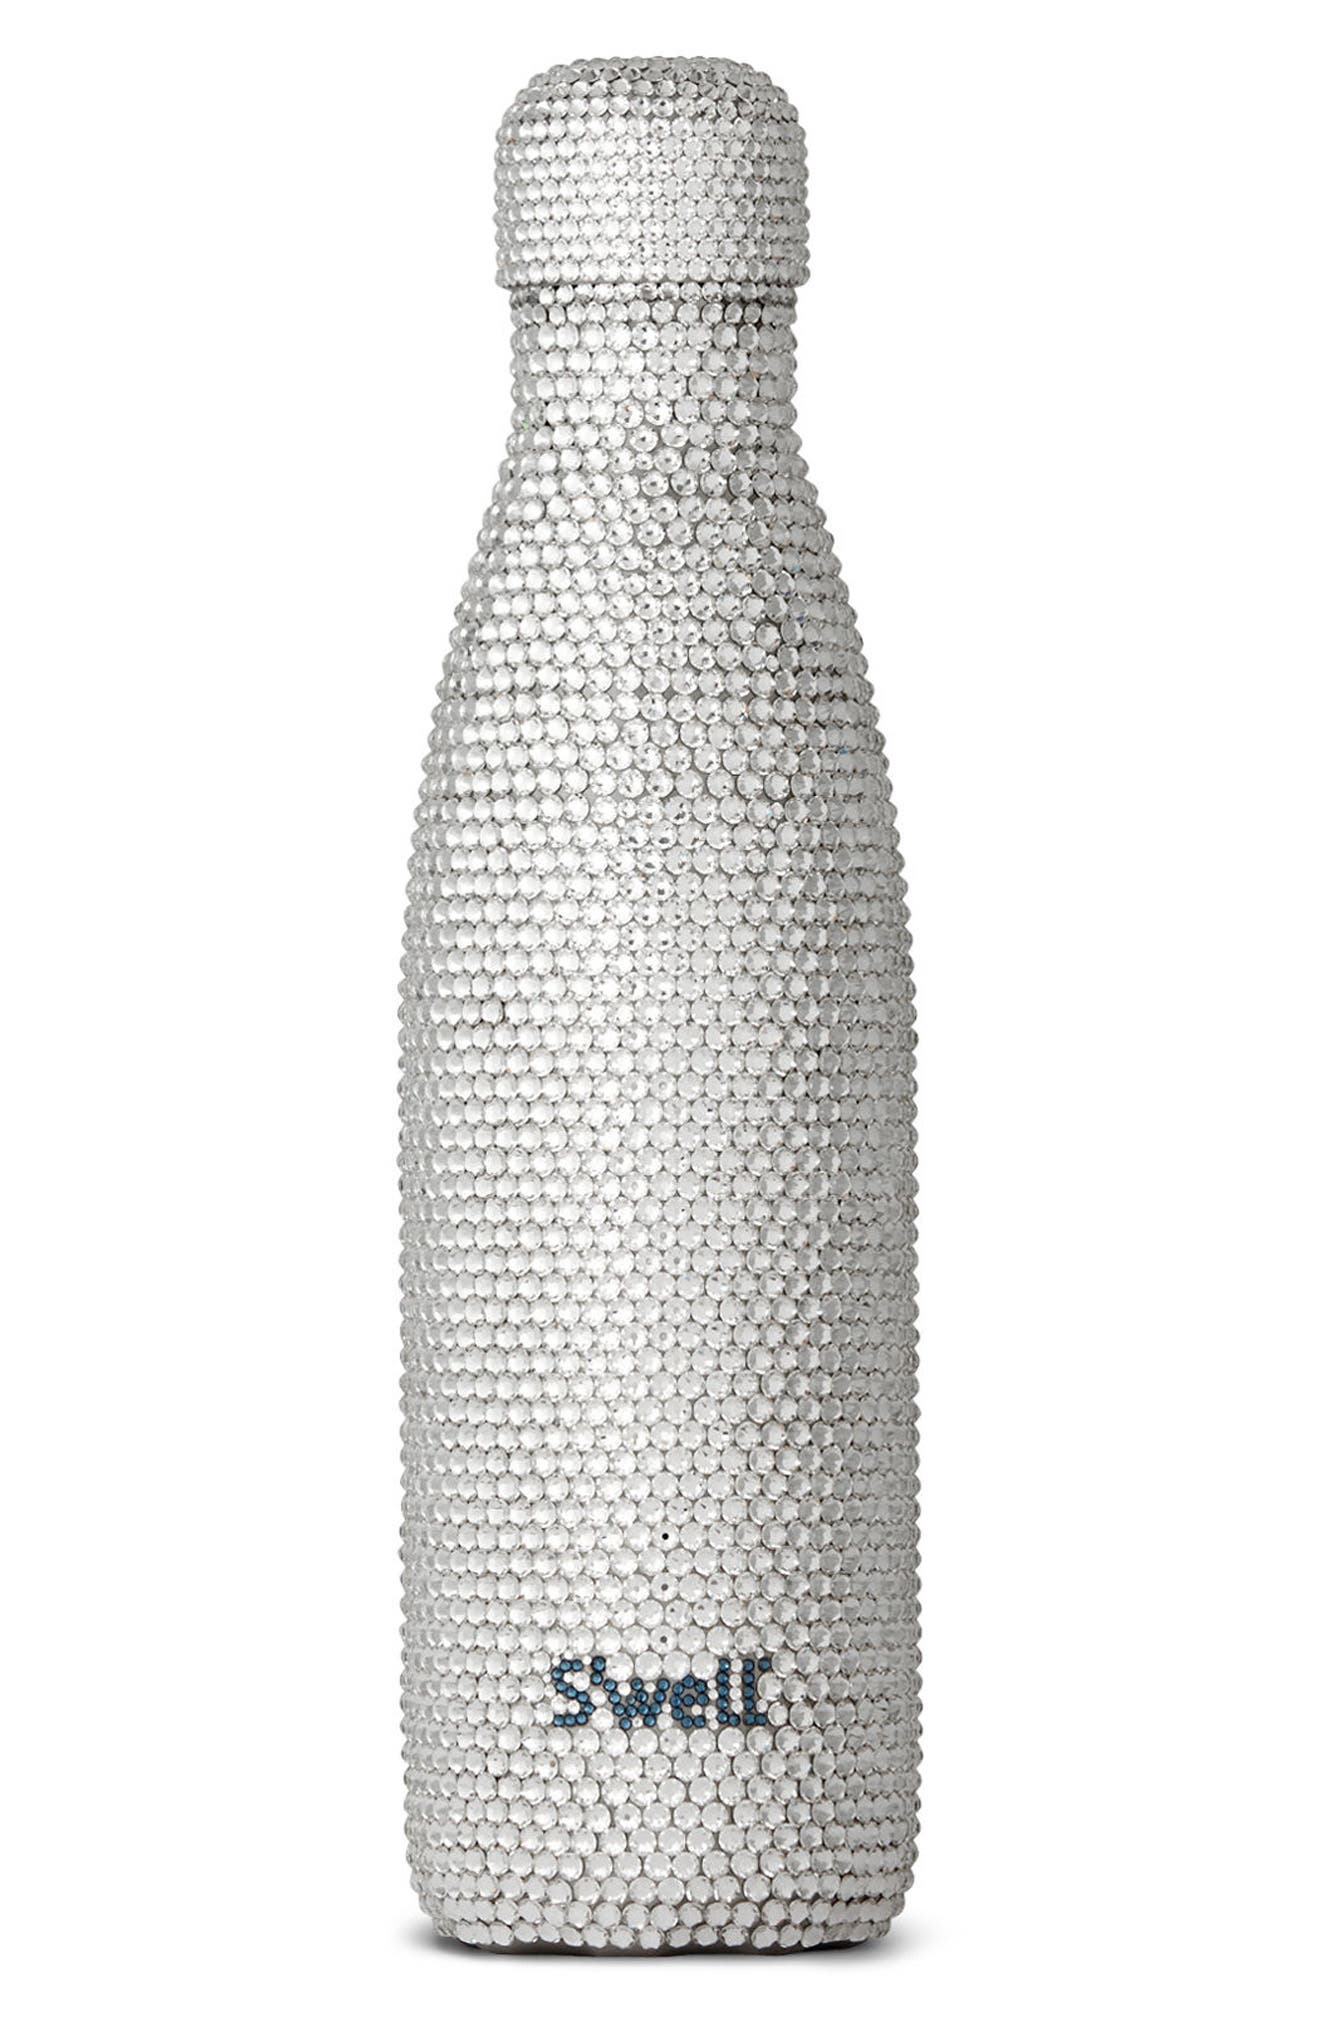 Alina Swarovski Crystal Insulated Stainless Steel Water Bottle,                         Main,                         color,